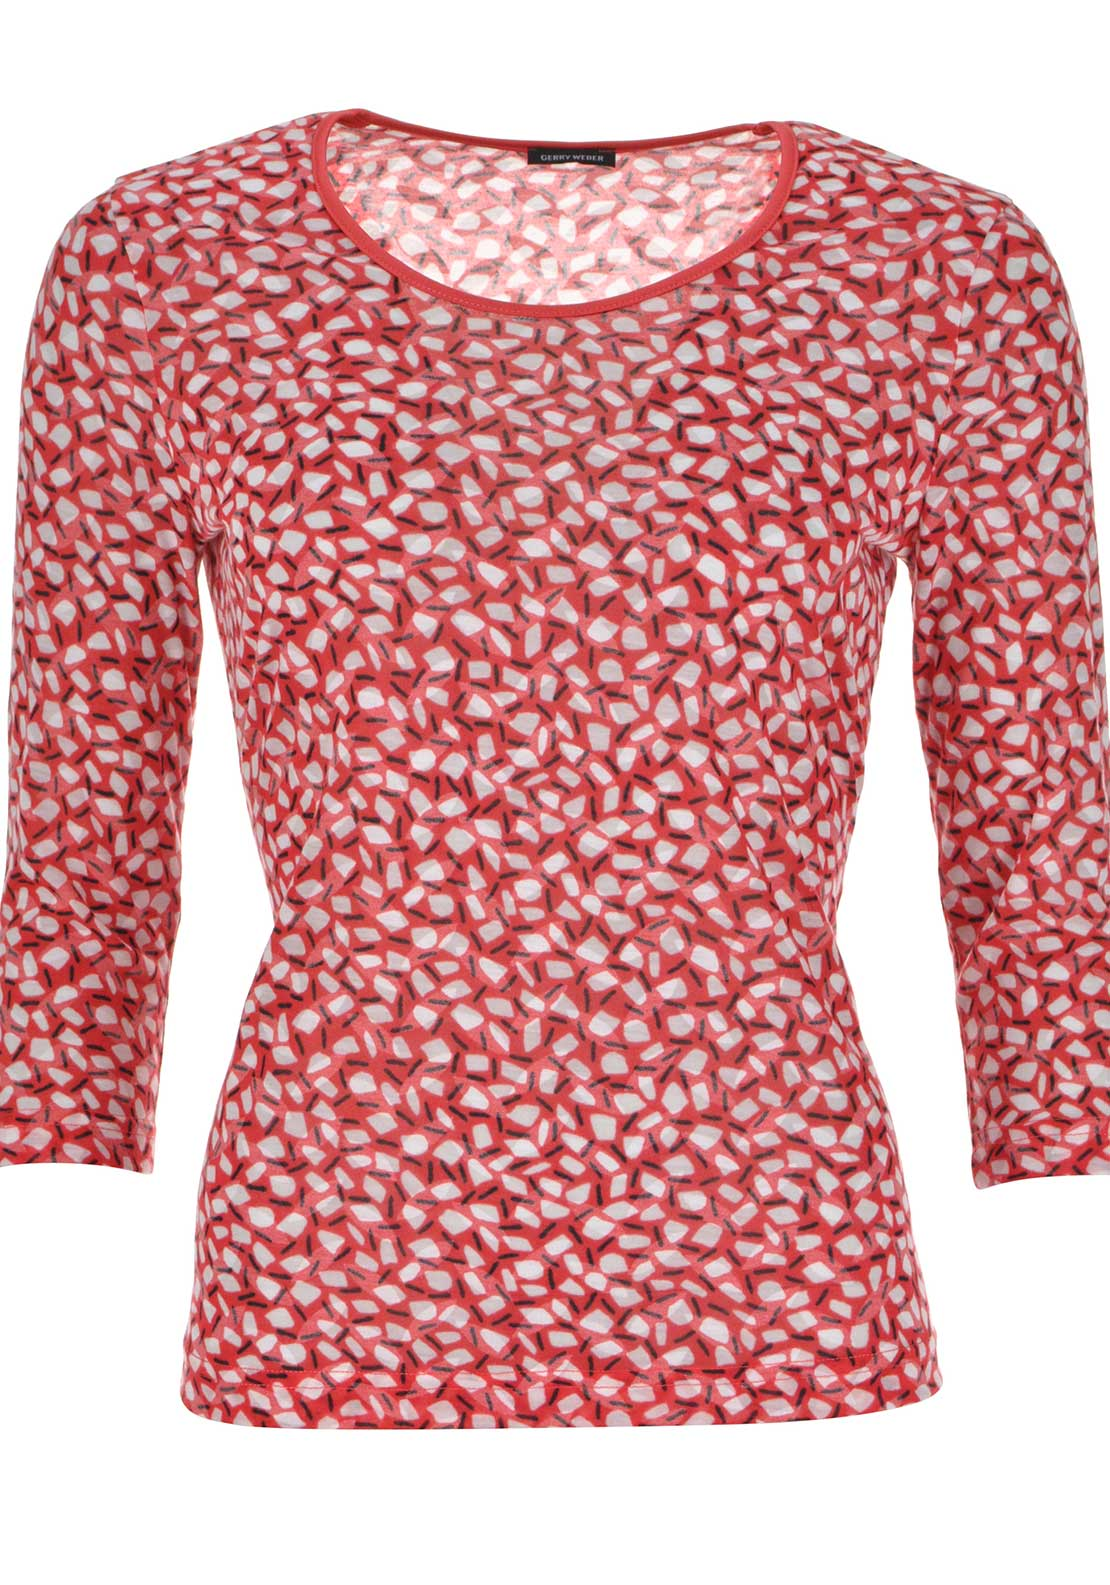 Gerry Weber Printed Semi-Sheer Cropped Sleeve Top, Red Multi